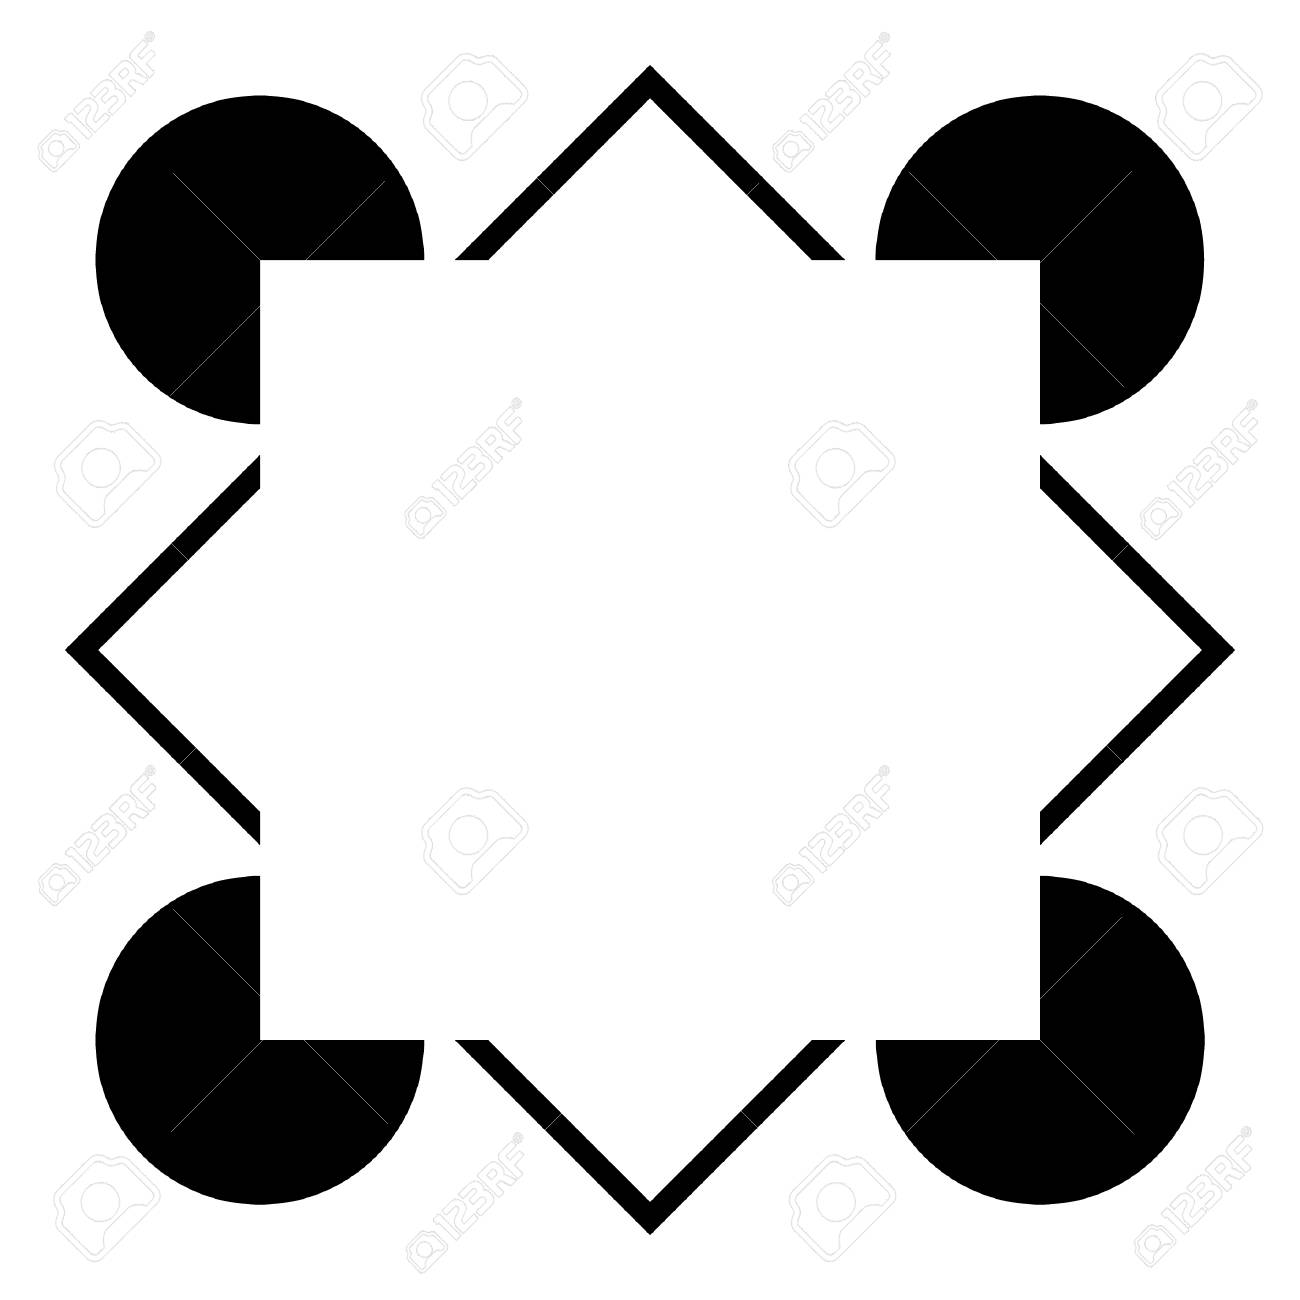 An optical illusion showing varied geometric figures, but no complete square. The illusion is that there is a square there, perceived by your brain, but not really in the drawing.